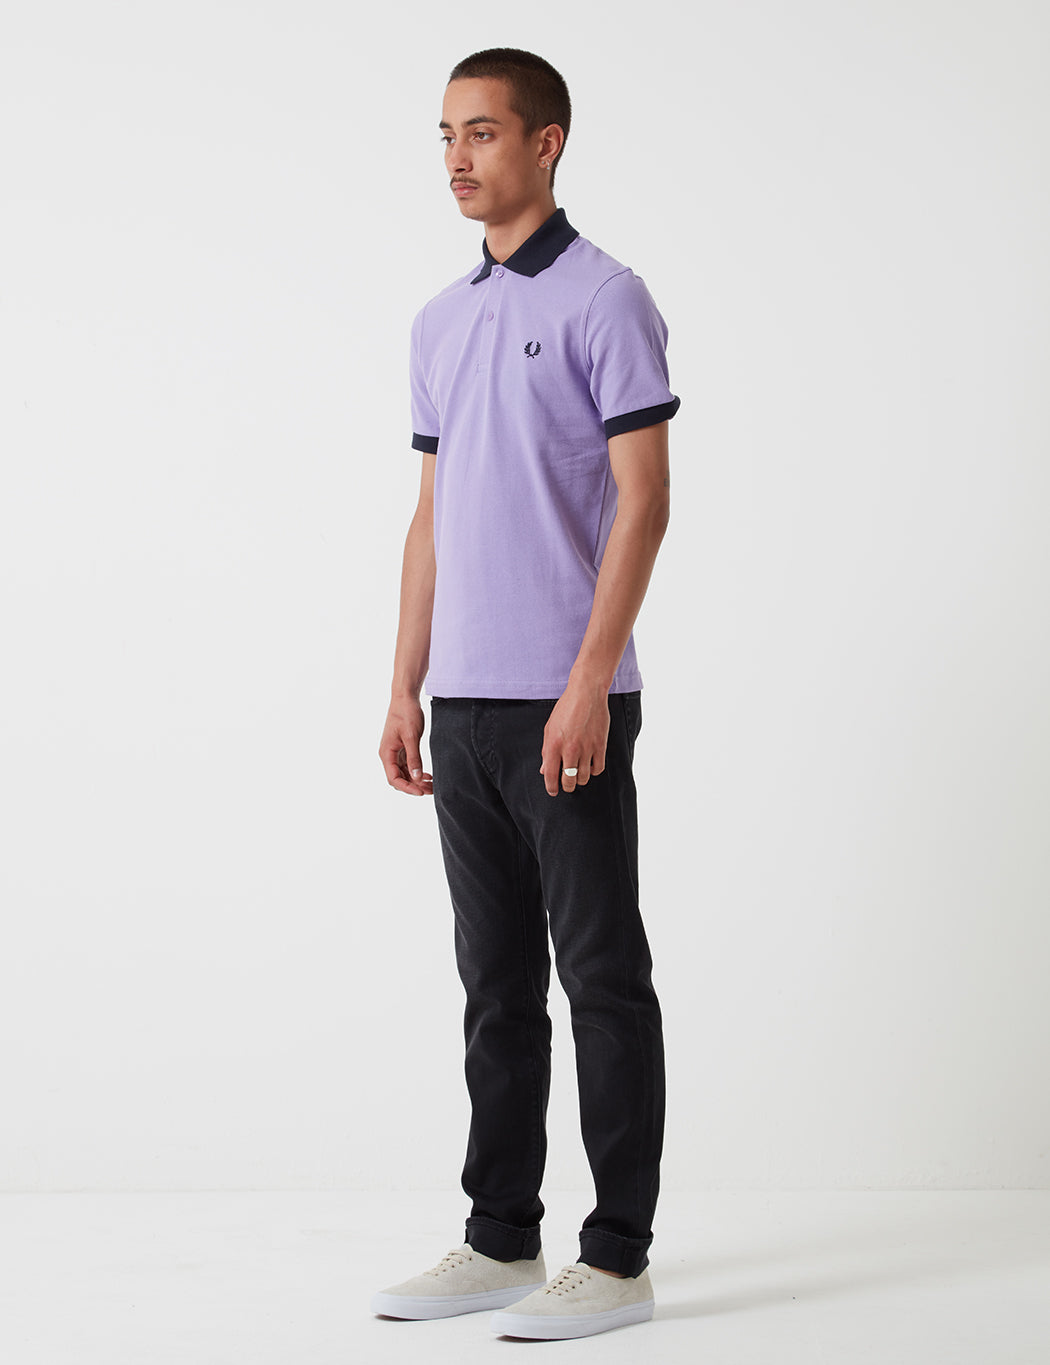 dfb2cd582 ... Fred Perry Contrast Rib Pique Shirt - Soft Lilac ...